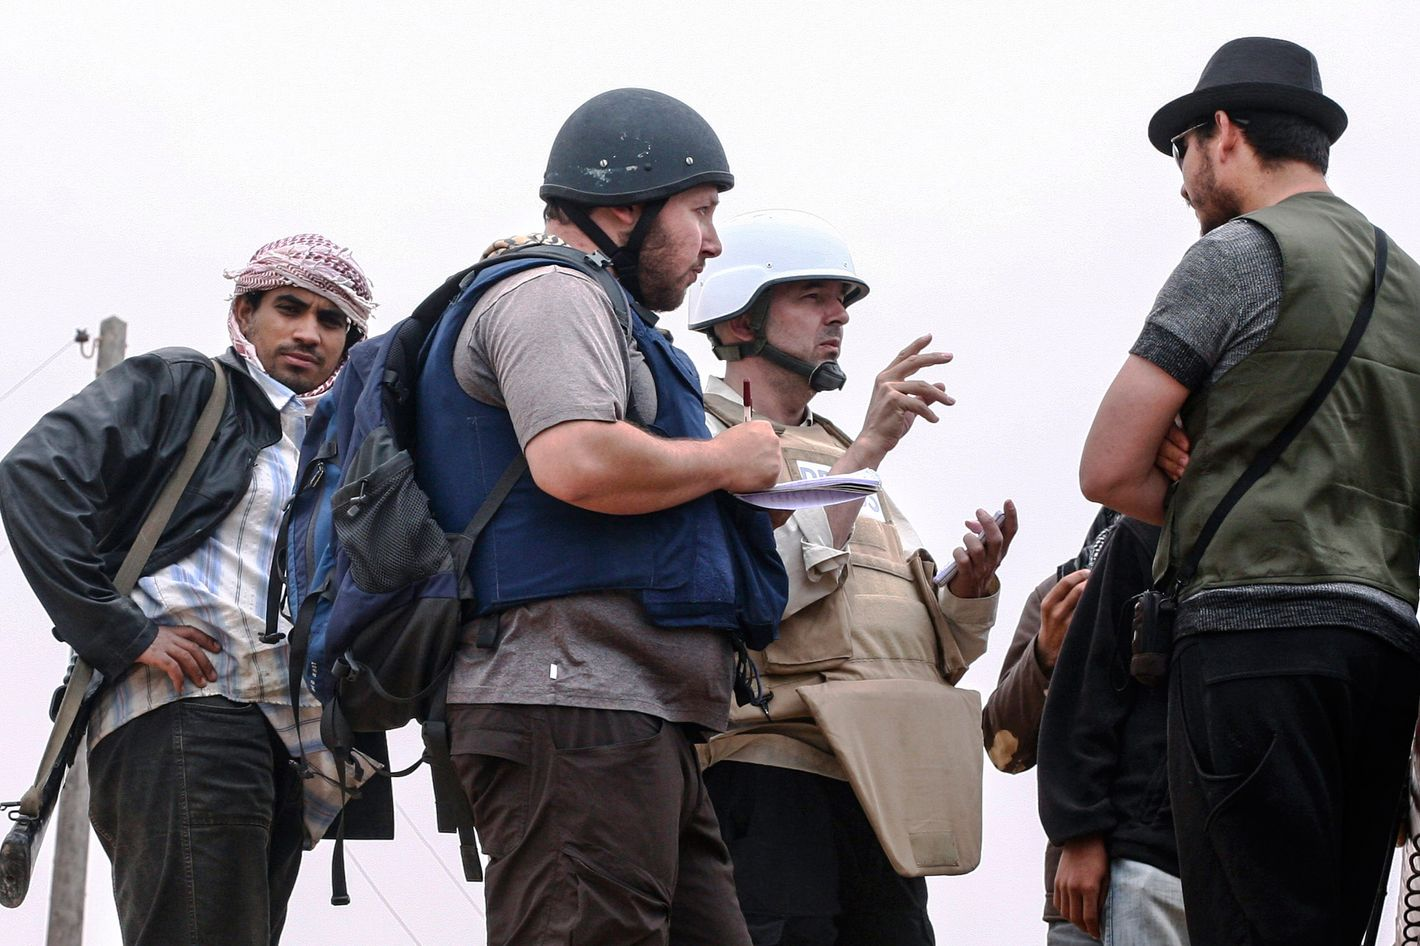 In this handout image made available by the photographer American journalist Steven Sotloff (Center with black helmet) talks to Libyan rebels on the Al Dafniya front line, 25 km west of Misrata on June 02, 2011 in Misrata, Libya.